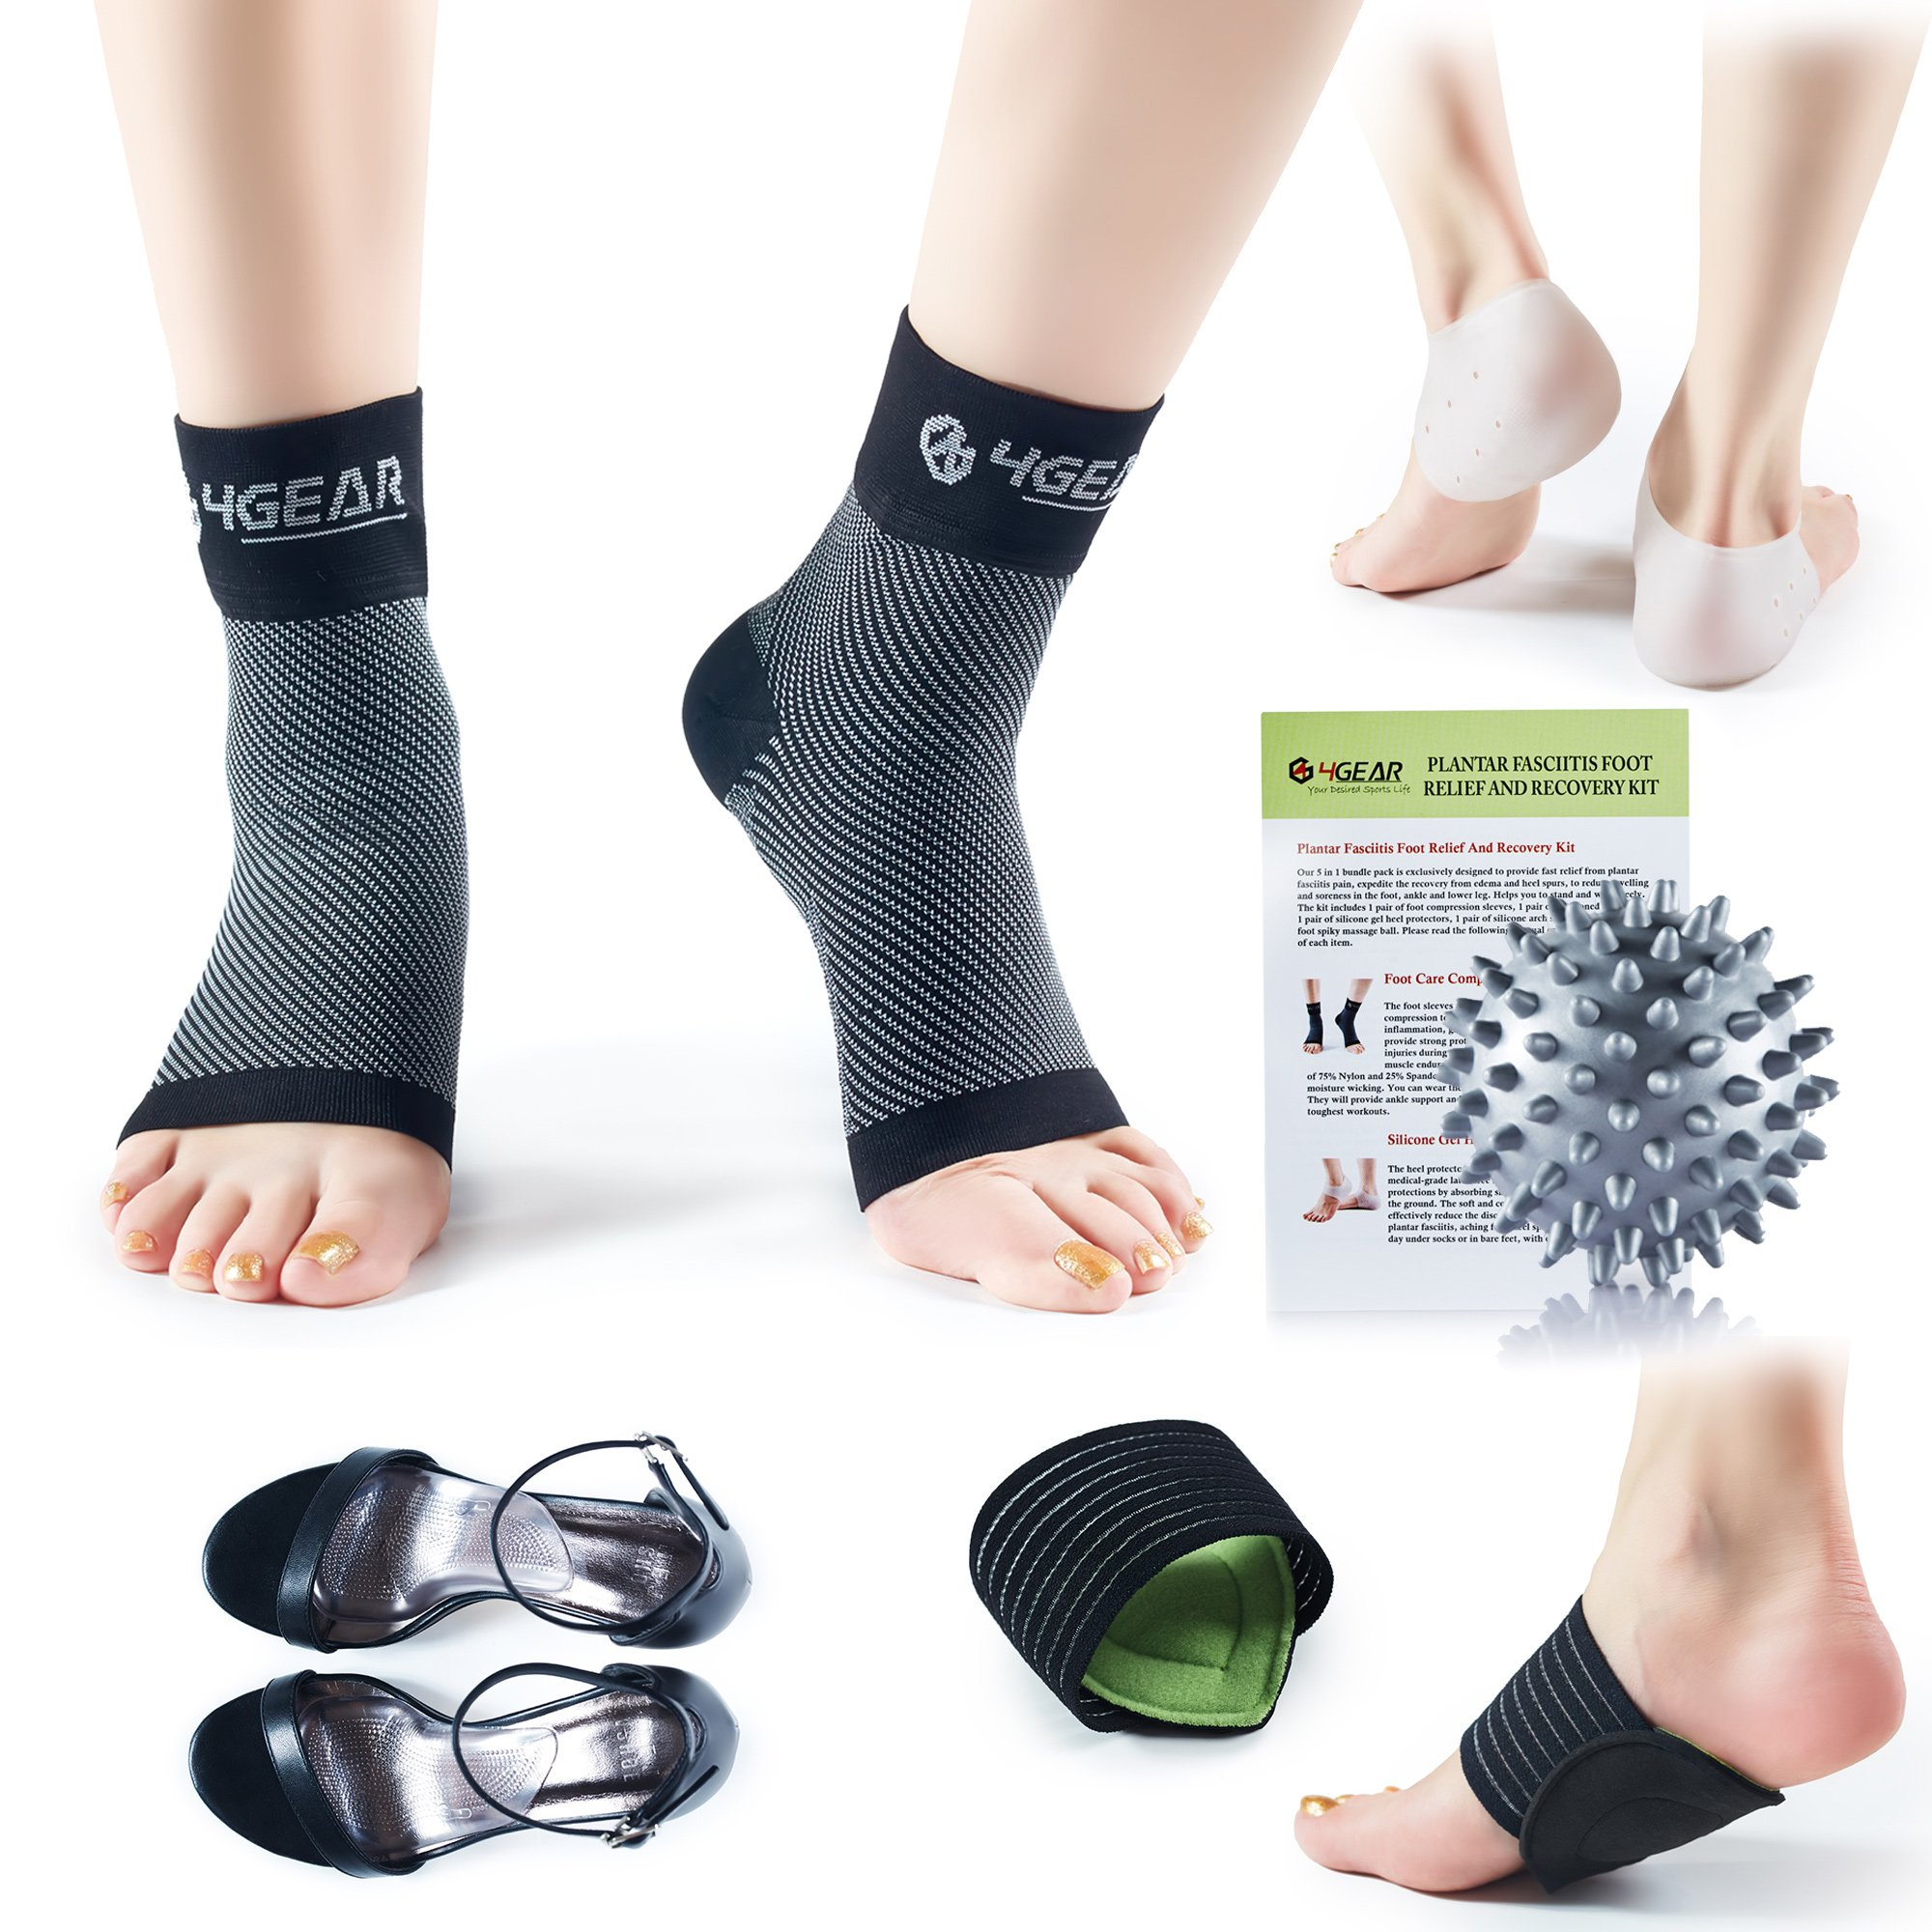 4GEAR Plantar Fasciitis Pain Relief Recovery Kit - 9 PCs - Foot Compression Sleeves, Heel Protectors, Cushioned Arch Support Wraps & Inserts, Foot Massage Ball- Instruction Guide Included (L/XL)